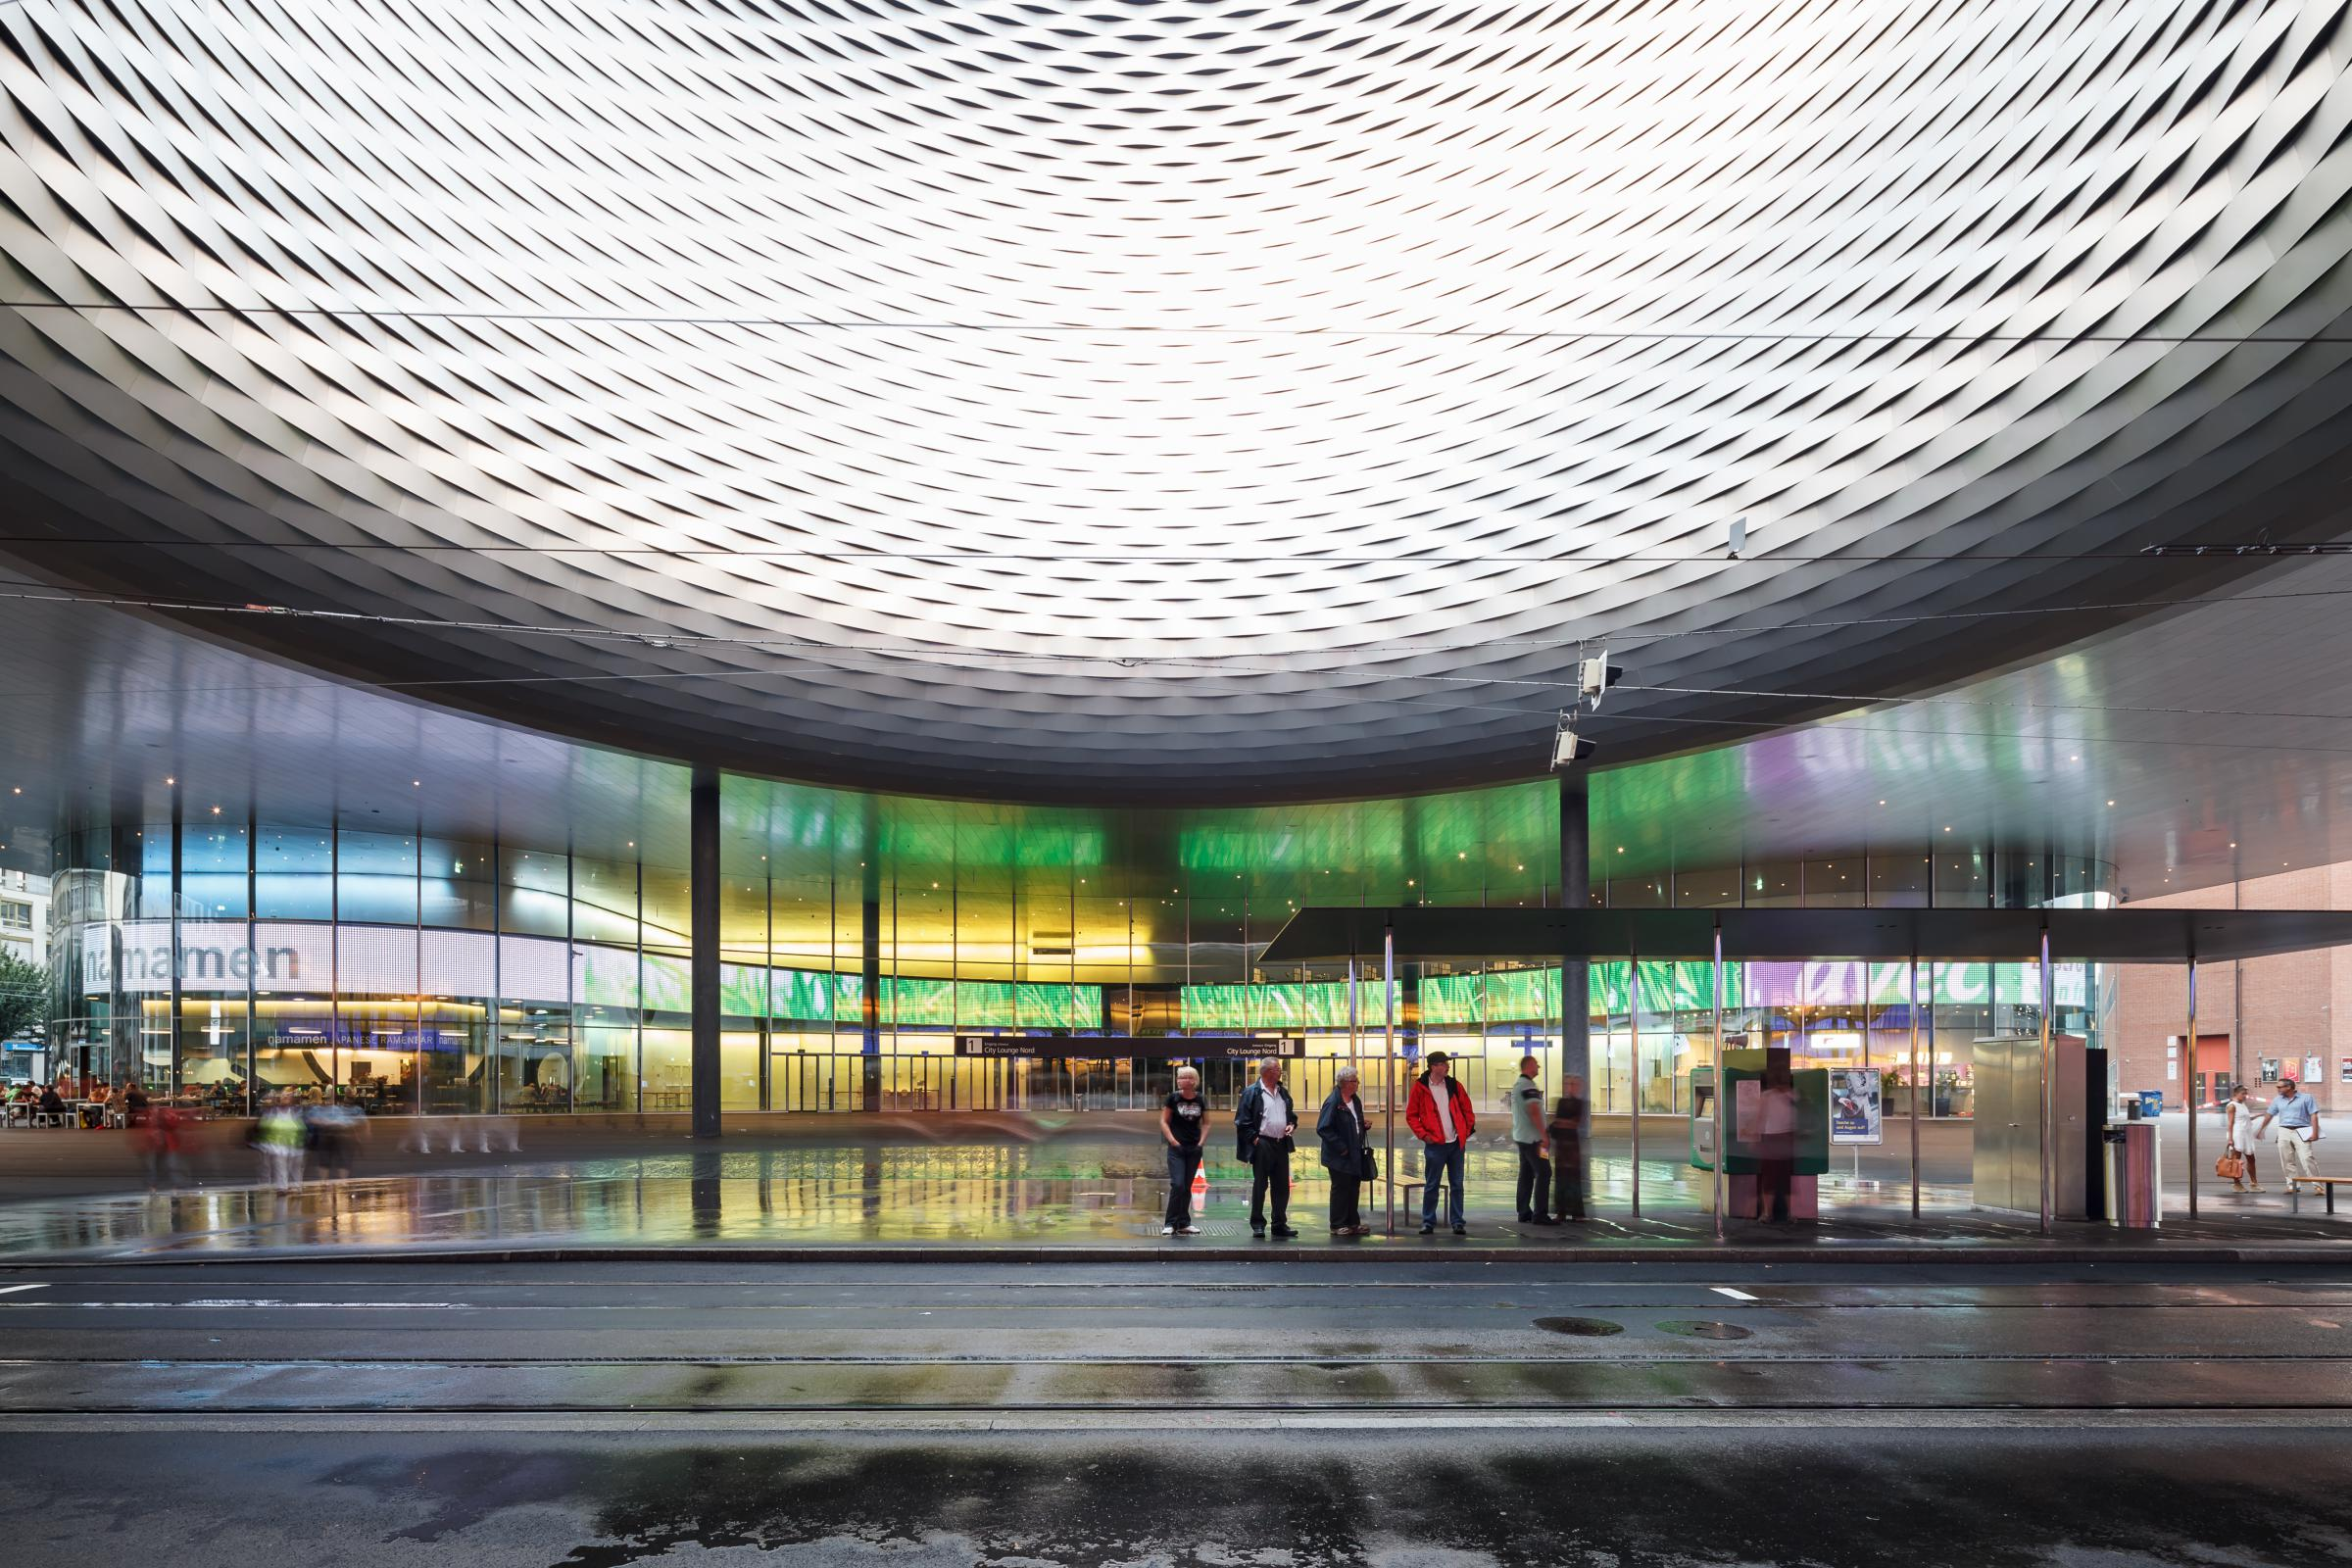 Photograph of Messe Basel New Hall, designed by Herzog & de Meuron and located in Basel, Switzerland